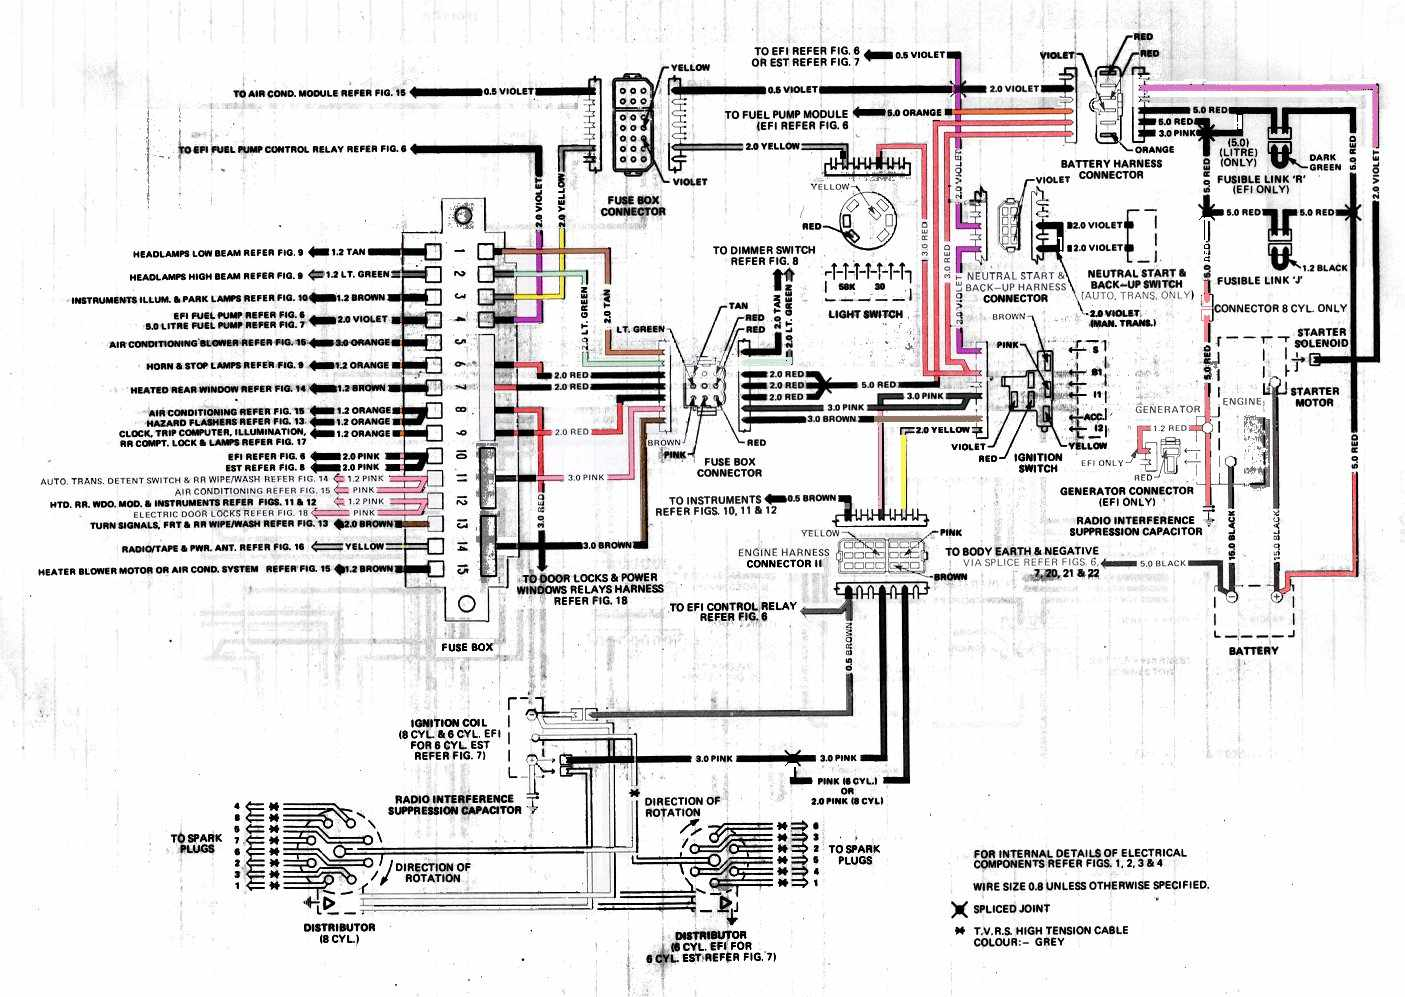 Marvellous olympian genset wiring diagram ideas best image wire unusual scania wiring diagram gallery electrical circuit diagram cheapraybanclubmaster Gallery